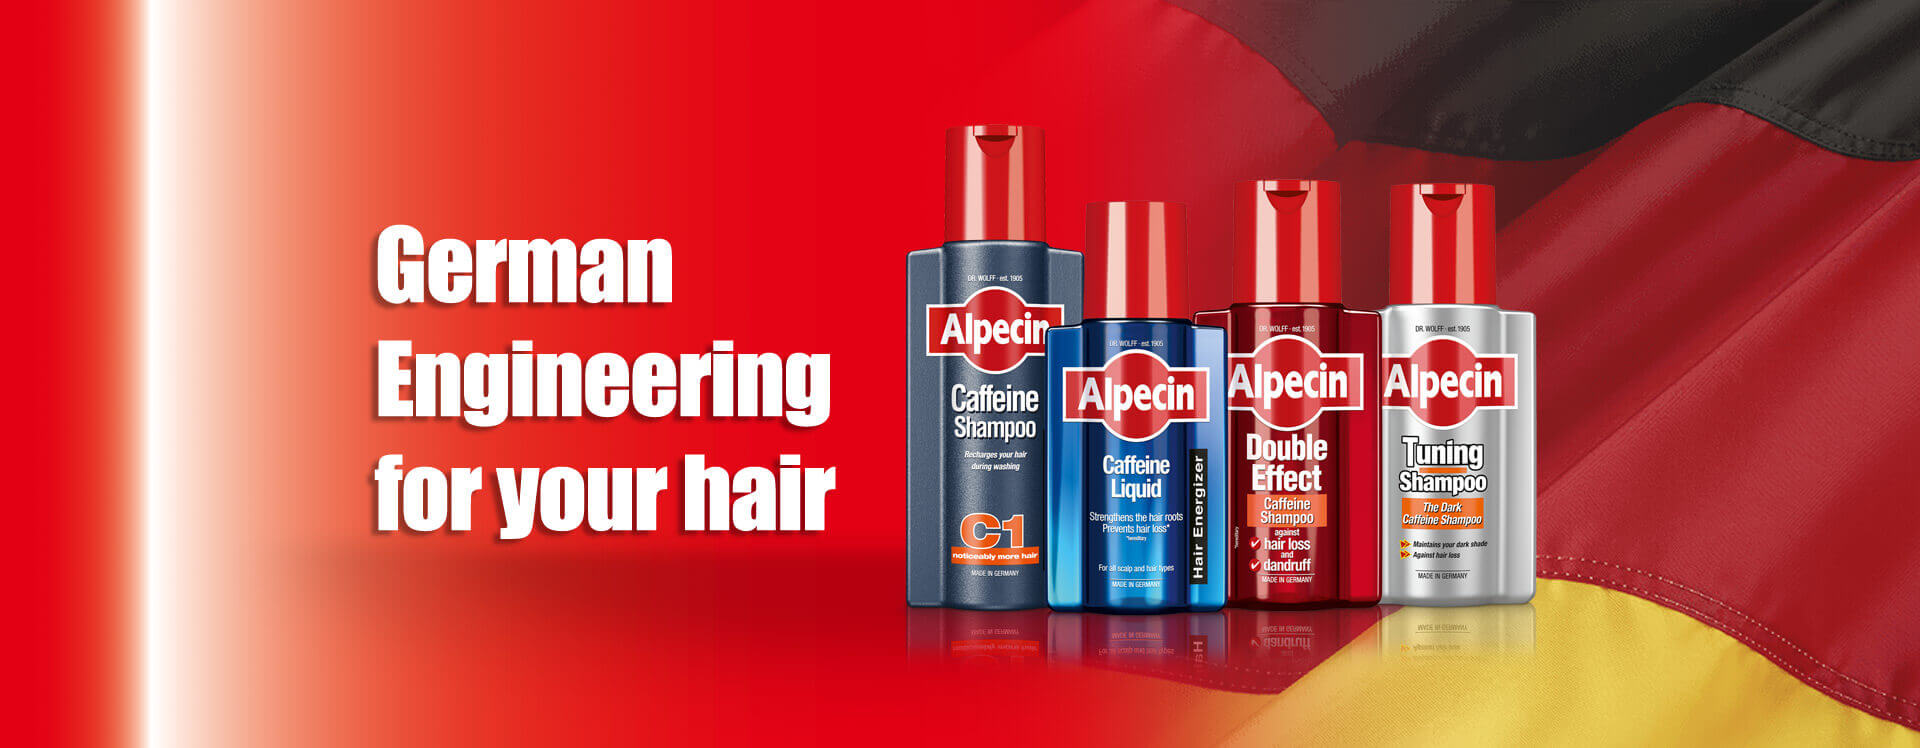 Alpecin | German Engineering for your hair